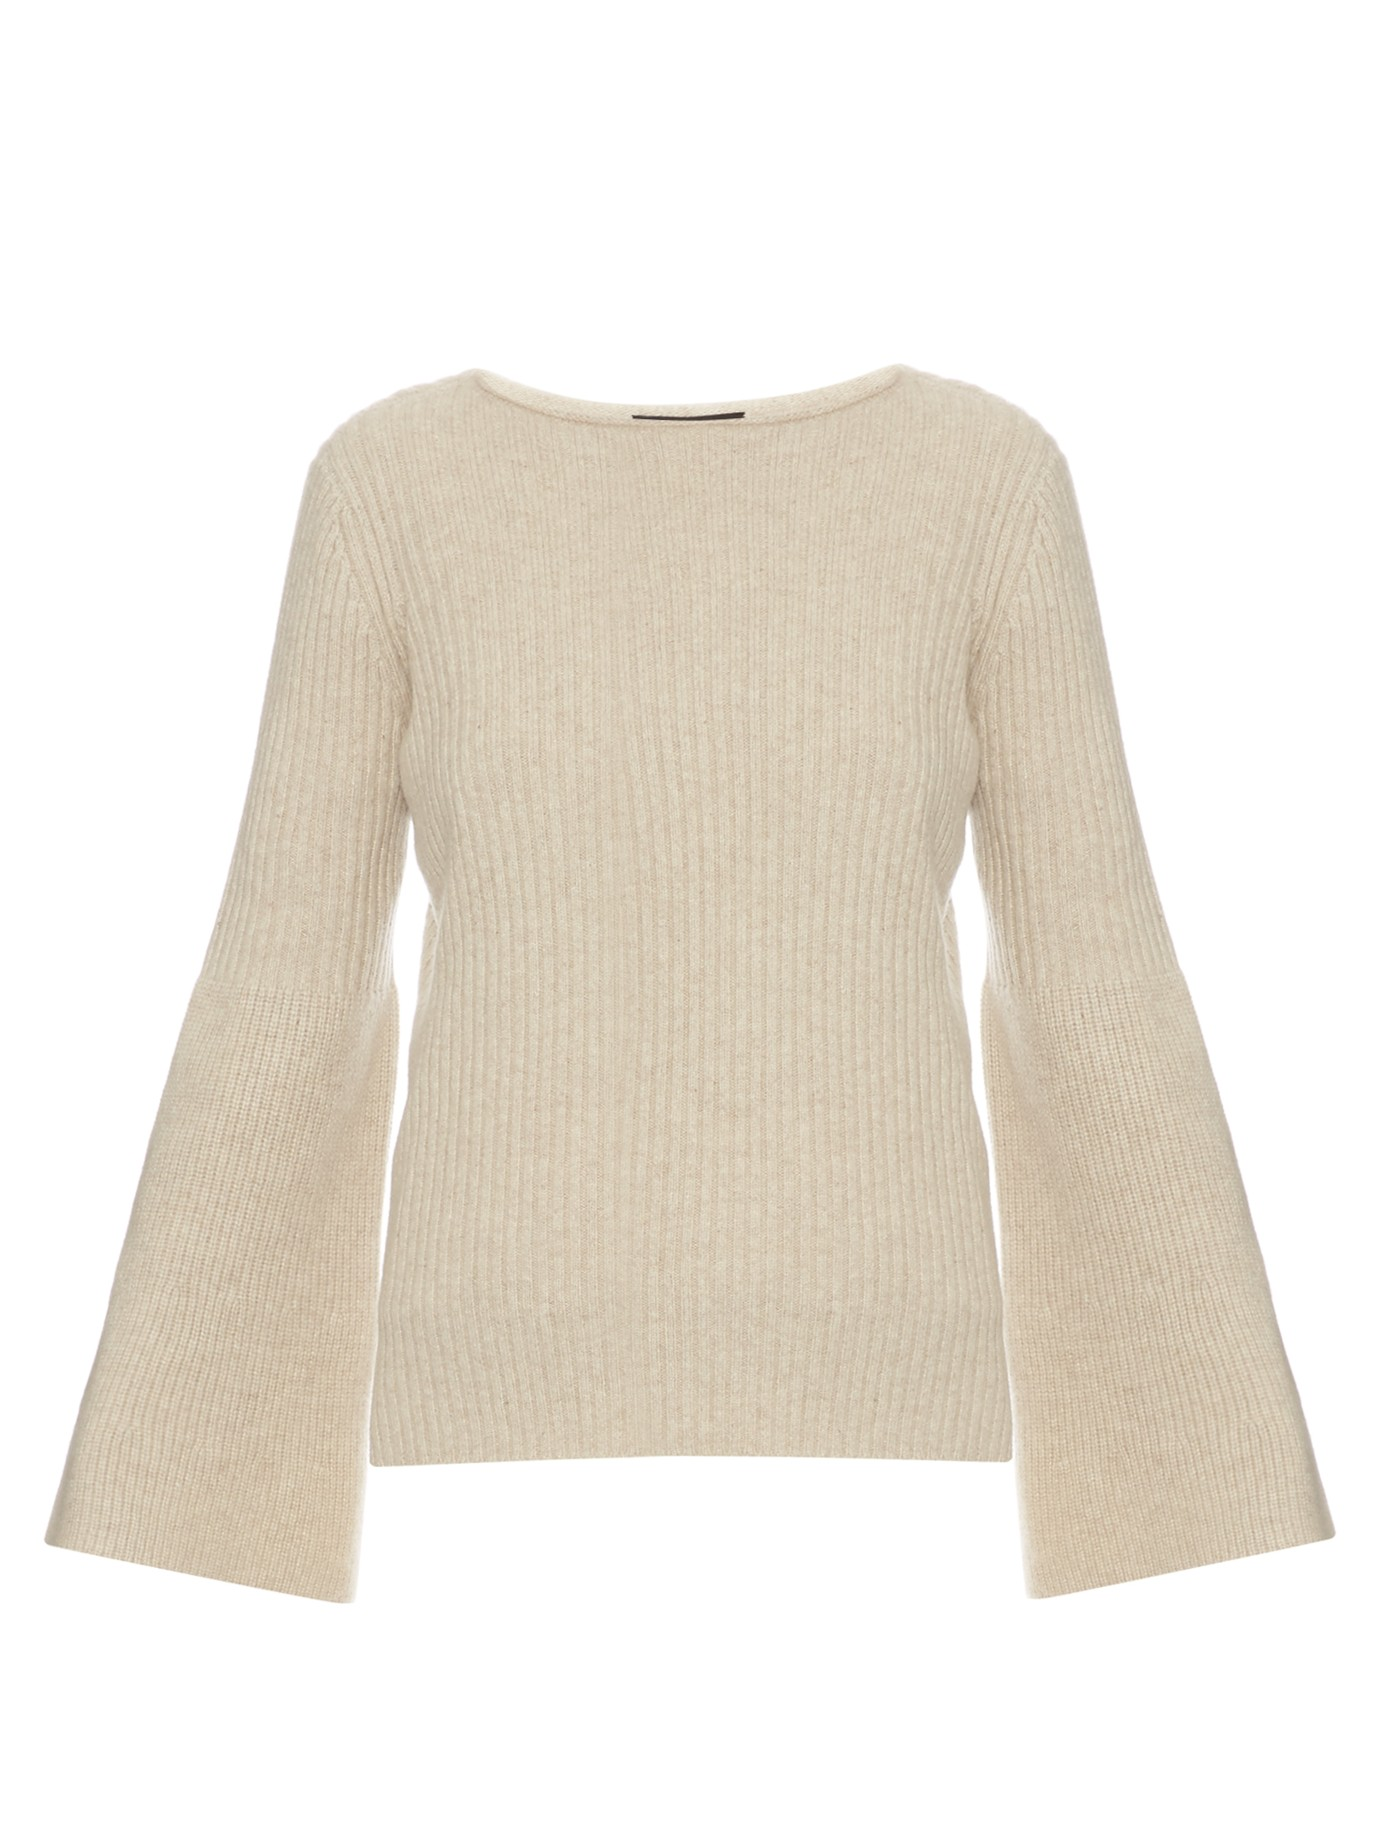 CASUAL CHIC: THE ROW Atilia long-sleeved ribbed knit sweater